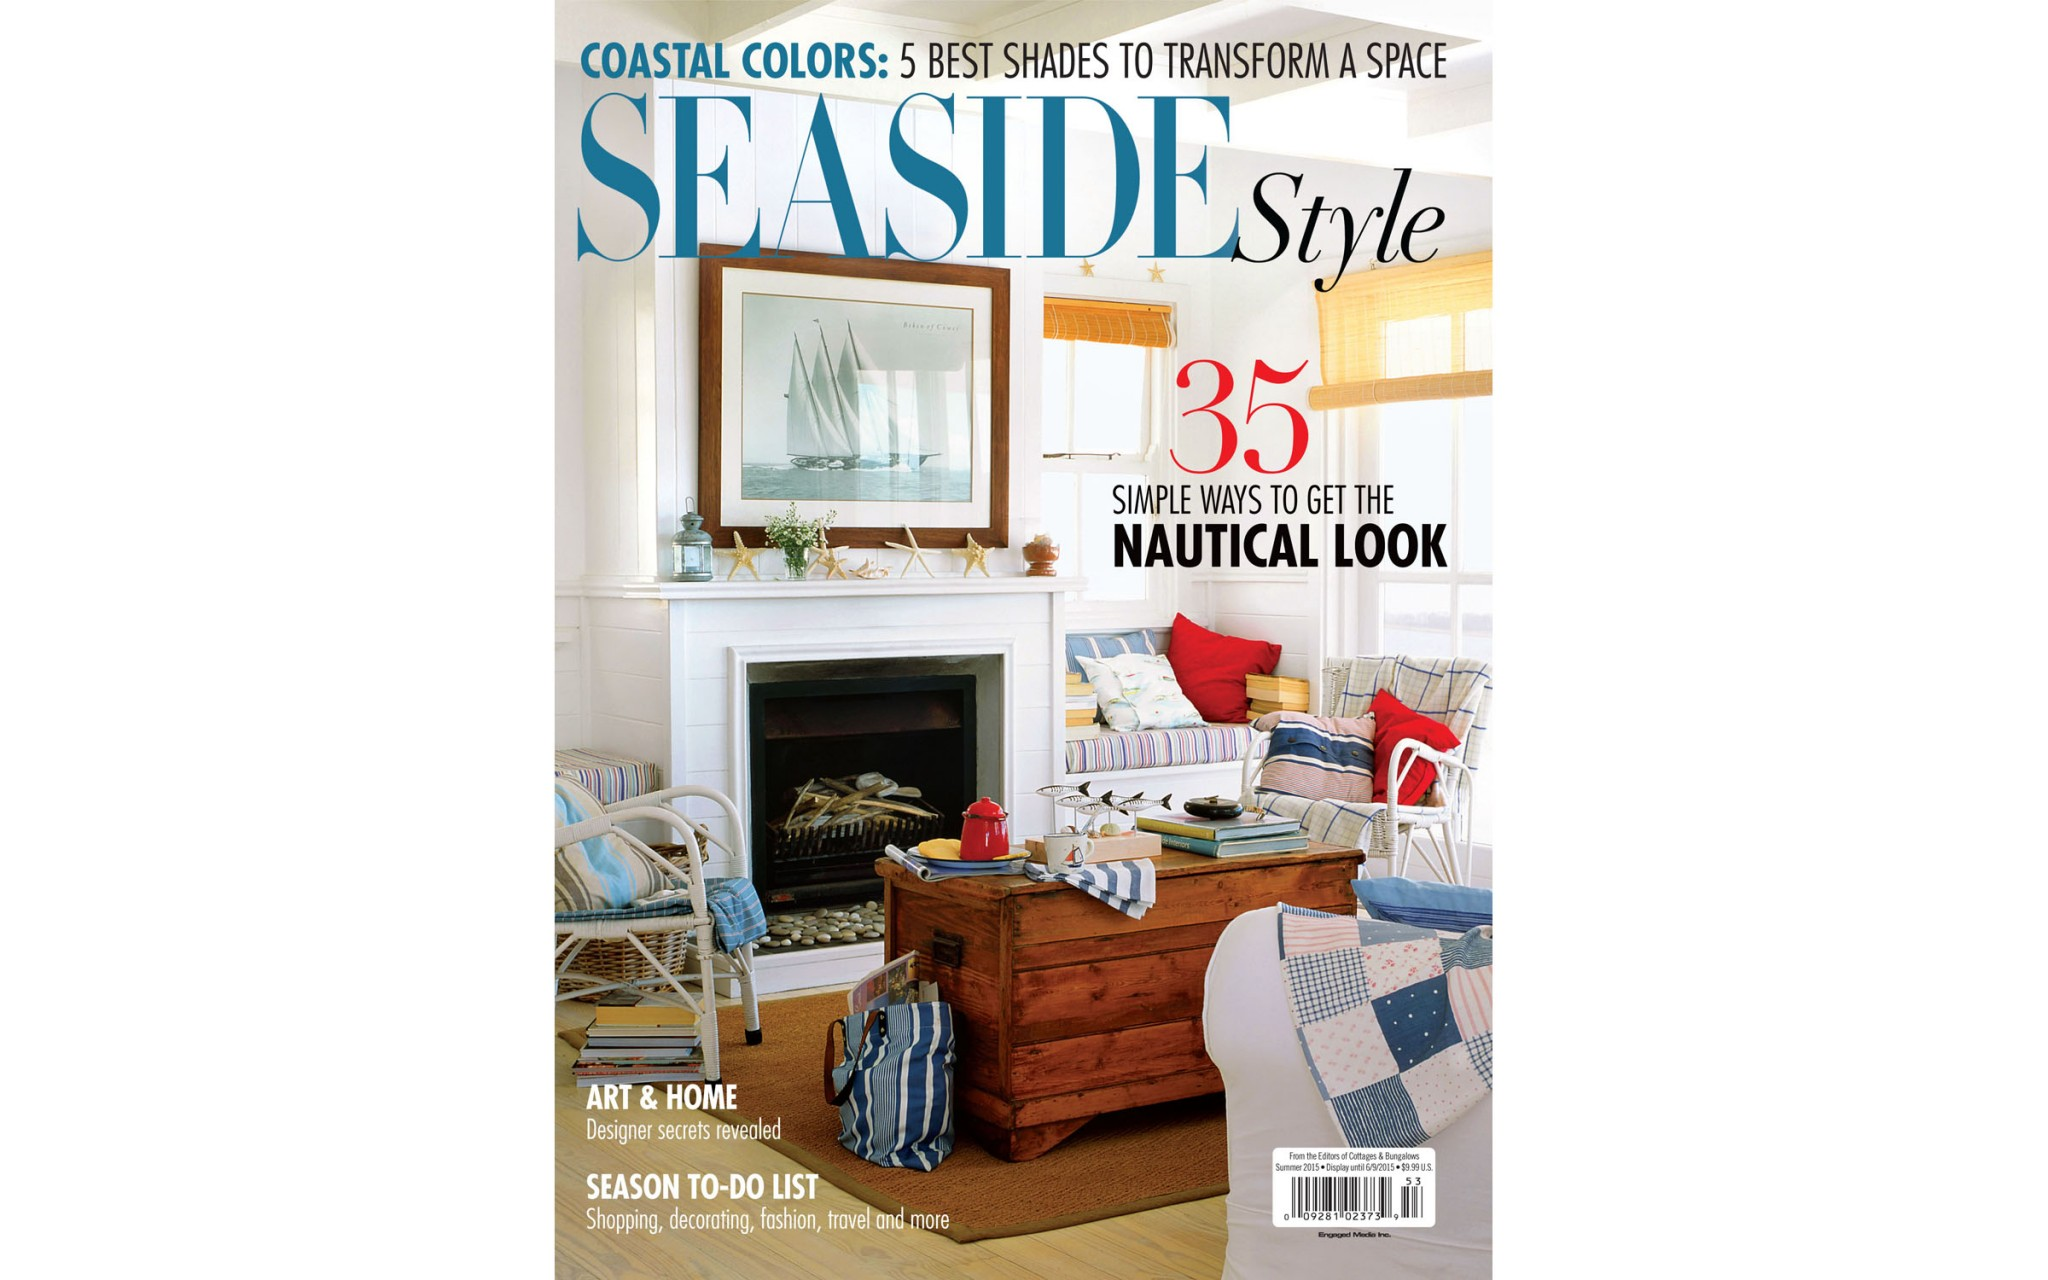 Seaside Style Magazine Featuring The Contemporary Style Of A Seaside Home  With Interior Design By Elizabeth